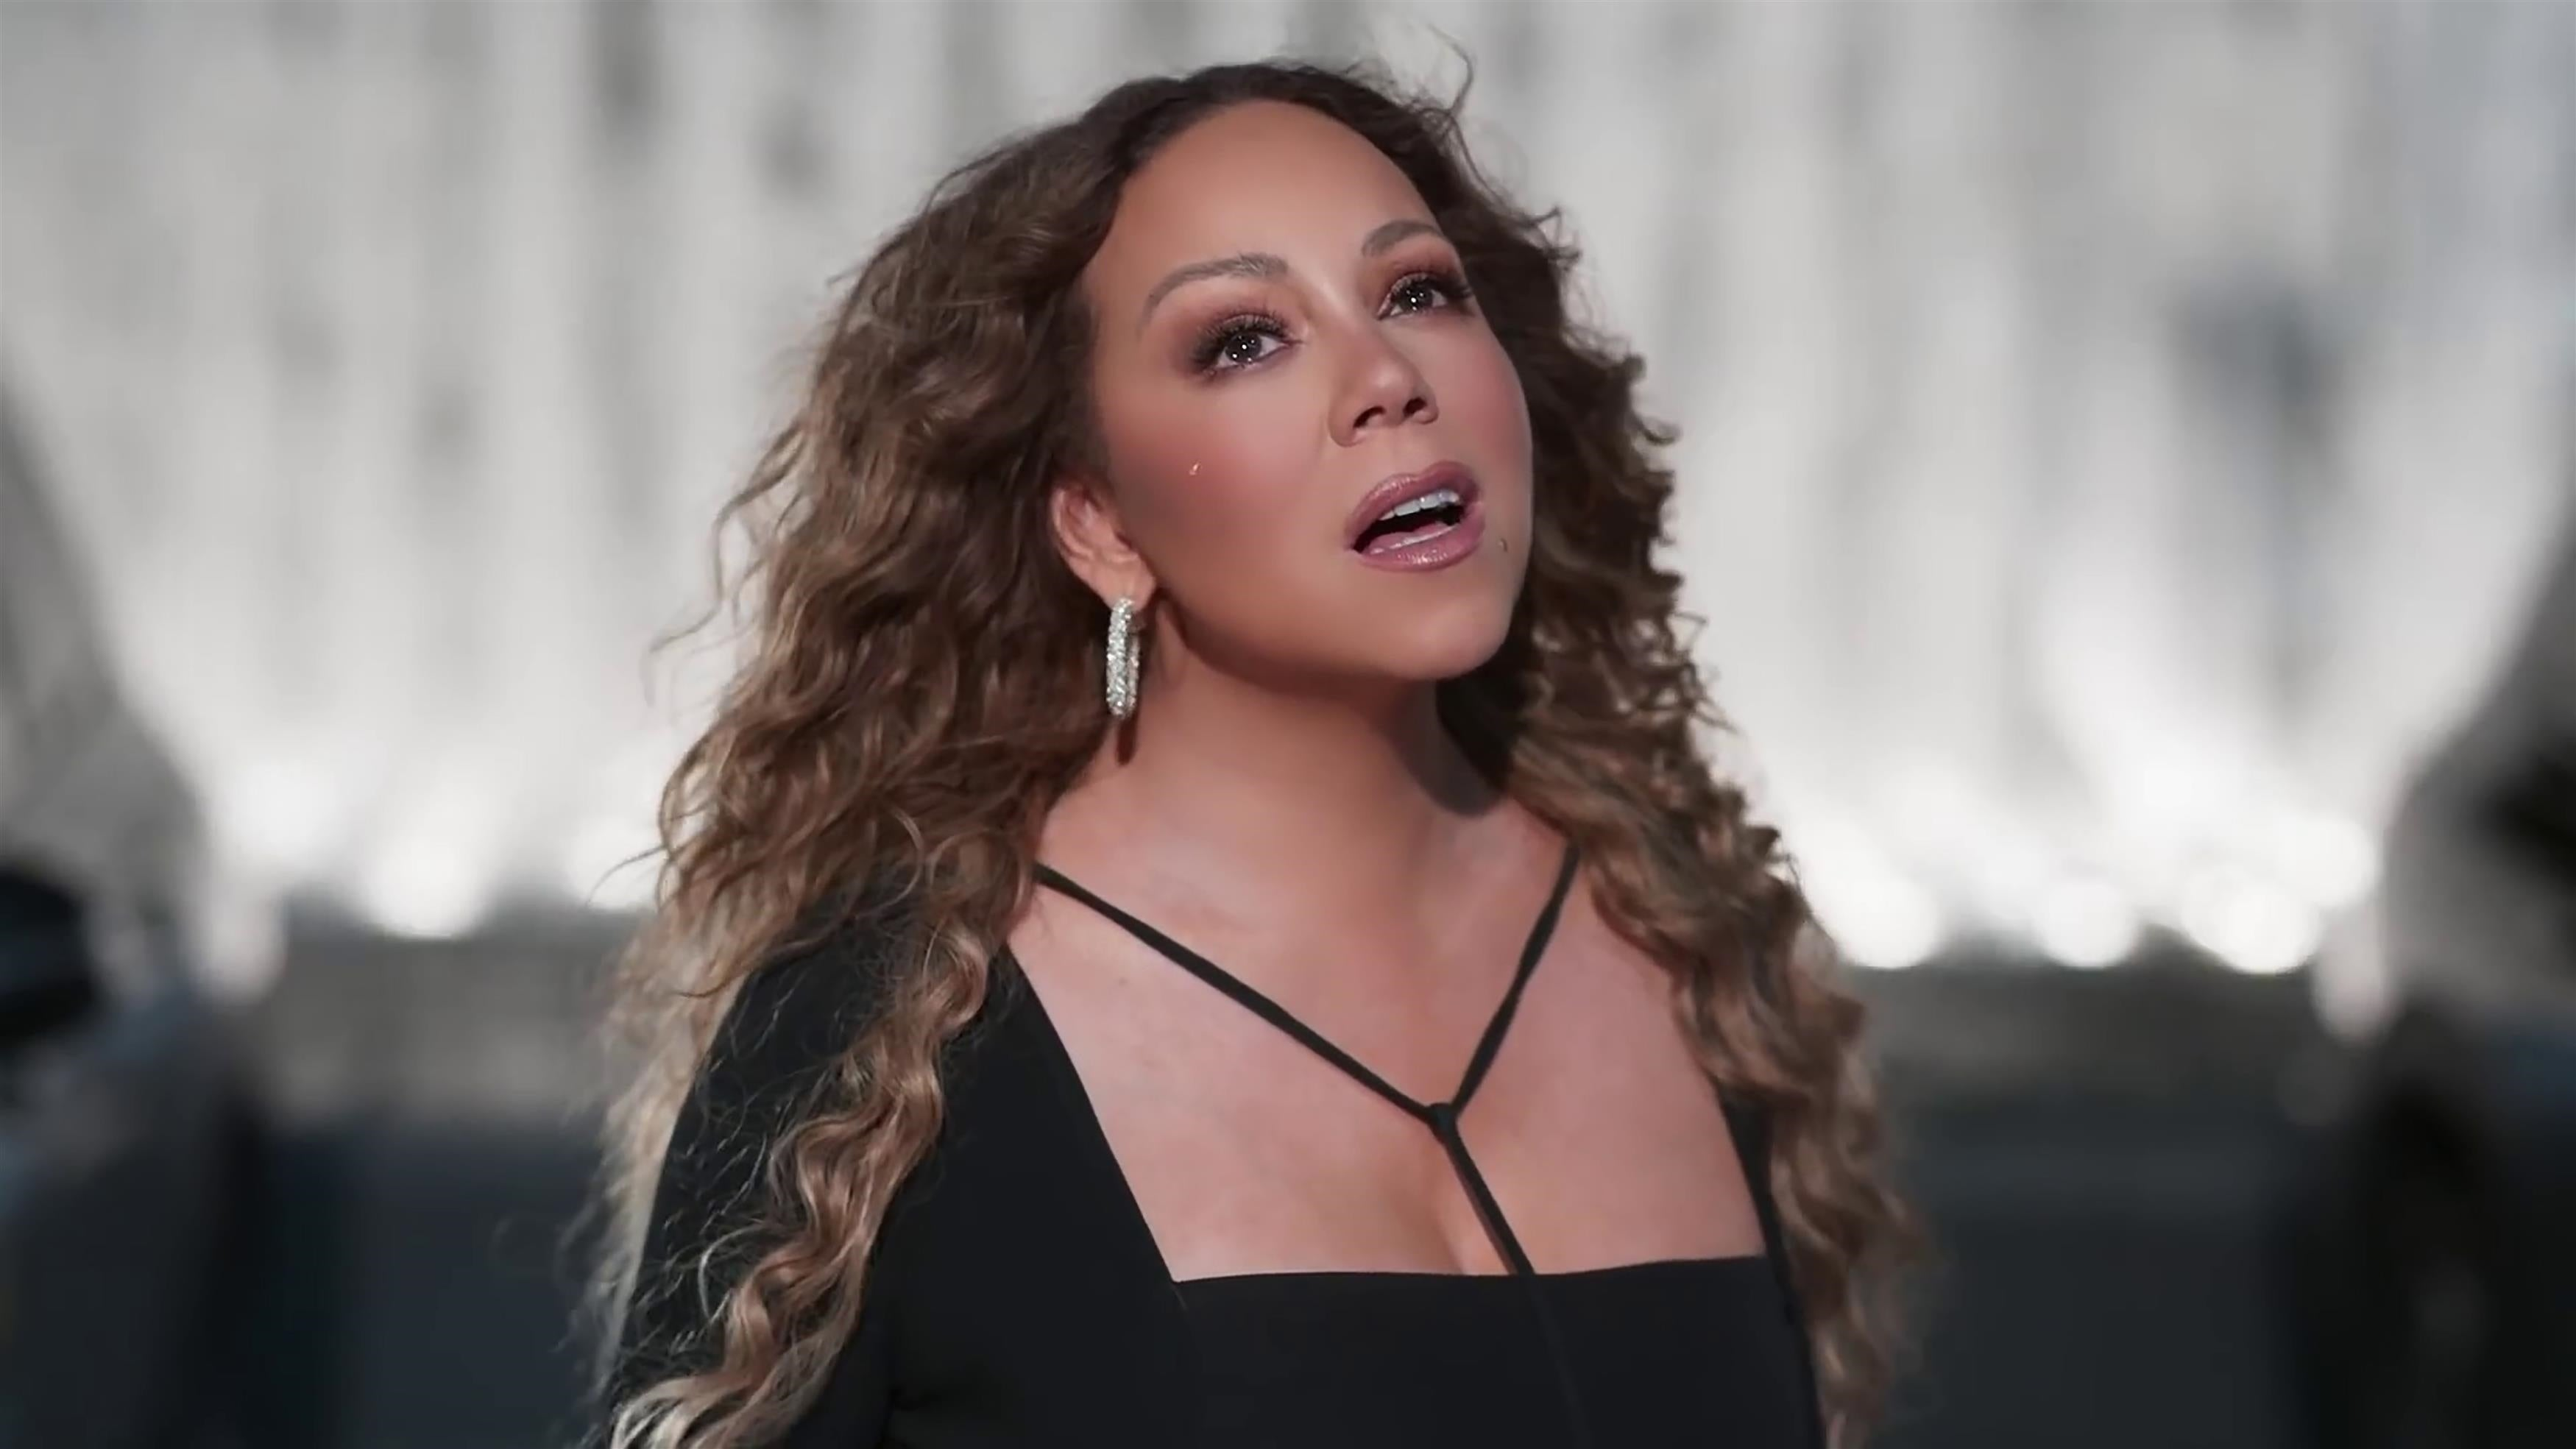 Mariah Carey describes herself as an 'ATM machine with a wig'